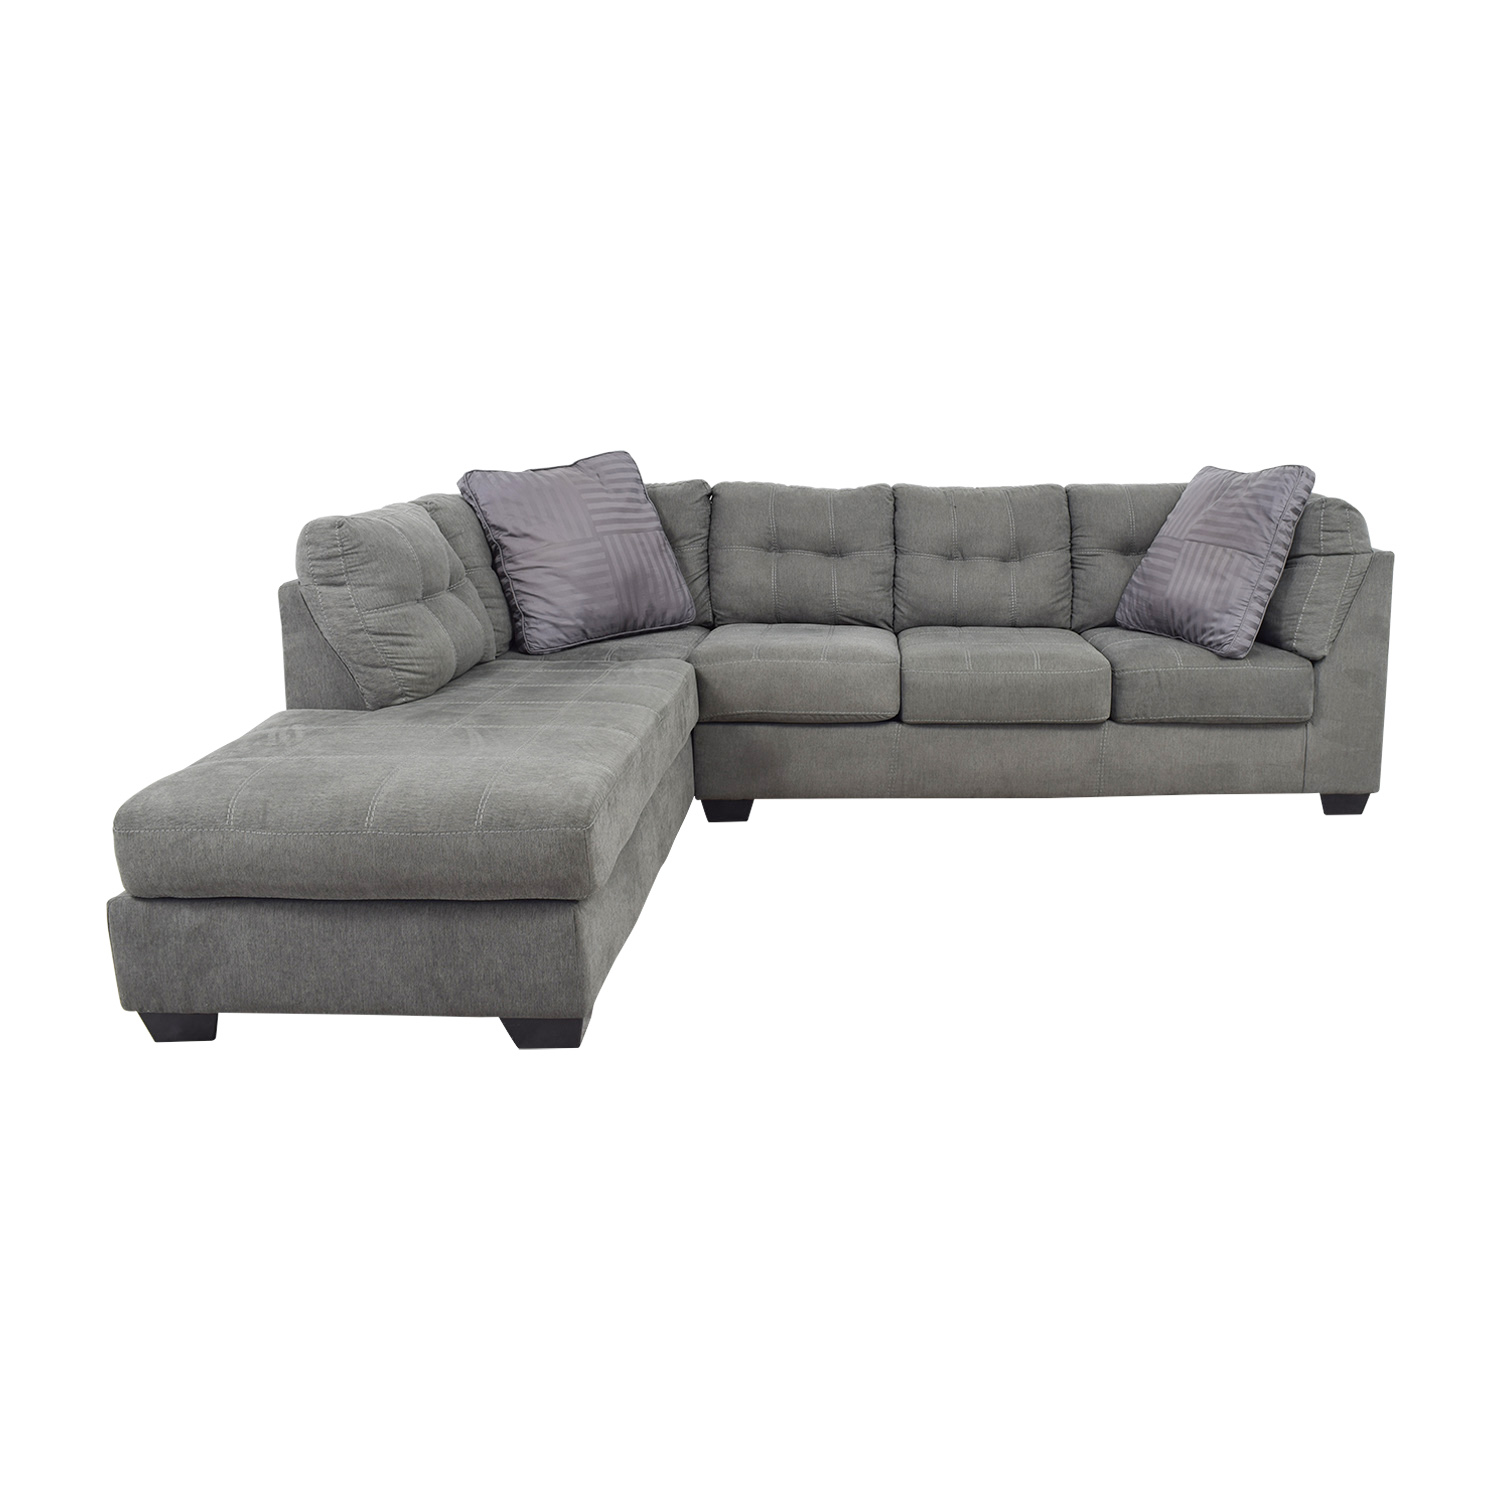 buy Jennifer Convertibles Arthur Grey Left Arm Chaise Sectional Jennifer Convertibles Sectionals